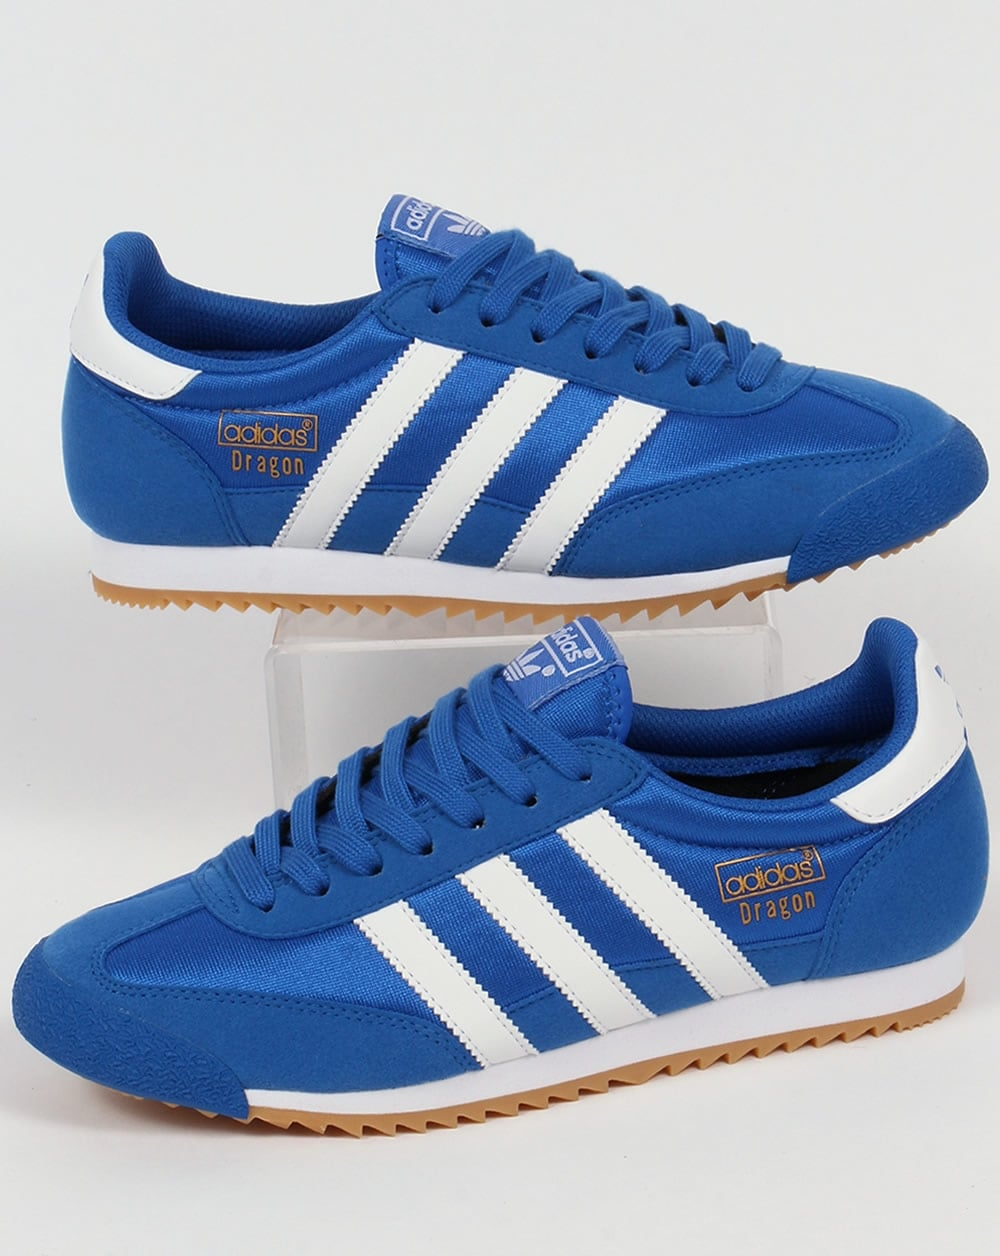 Retro Blue Suede ADIDAS Sneaker UK 8